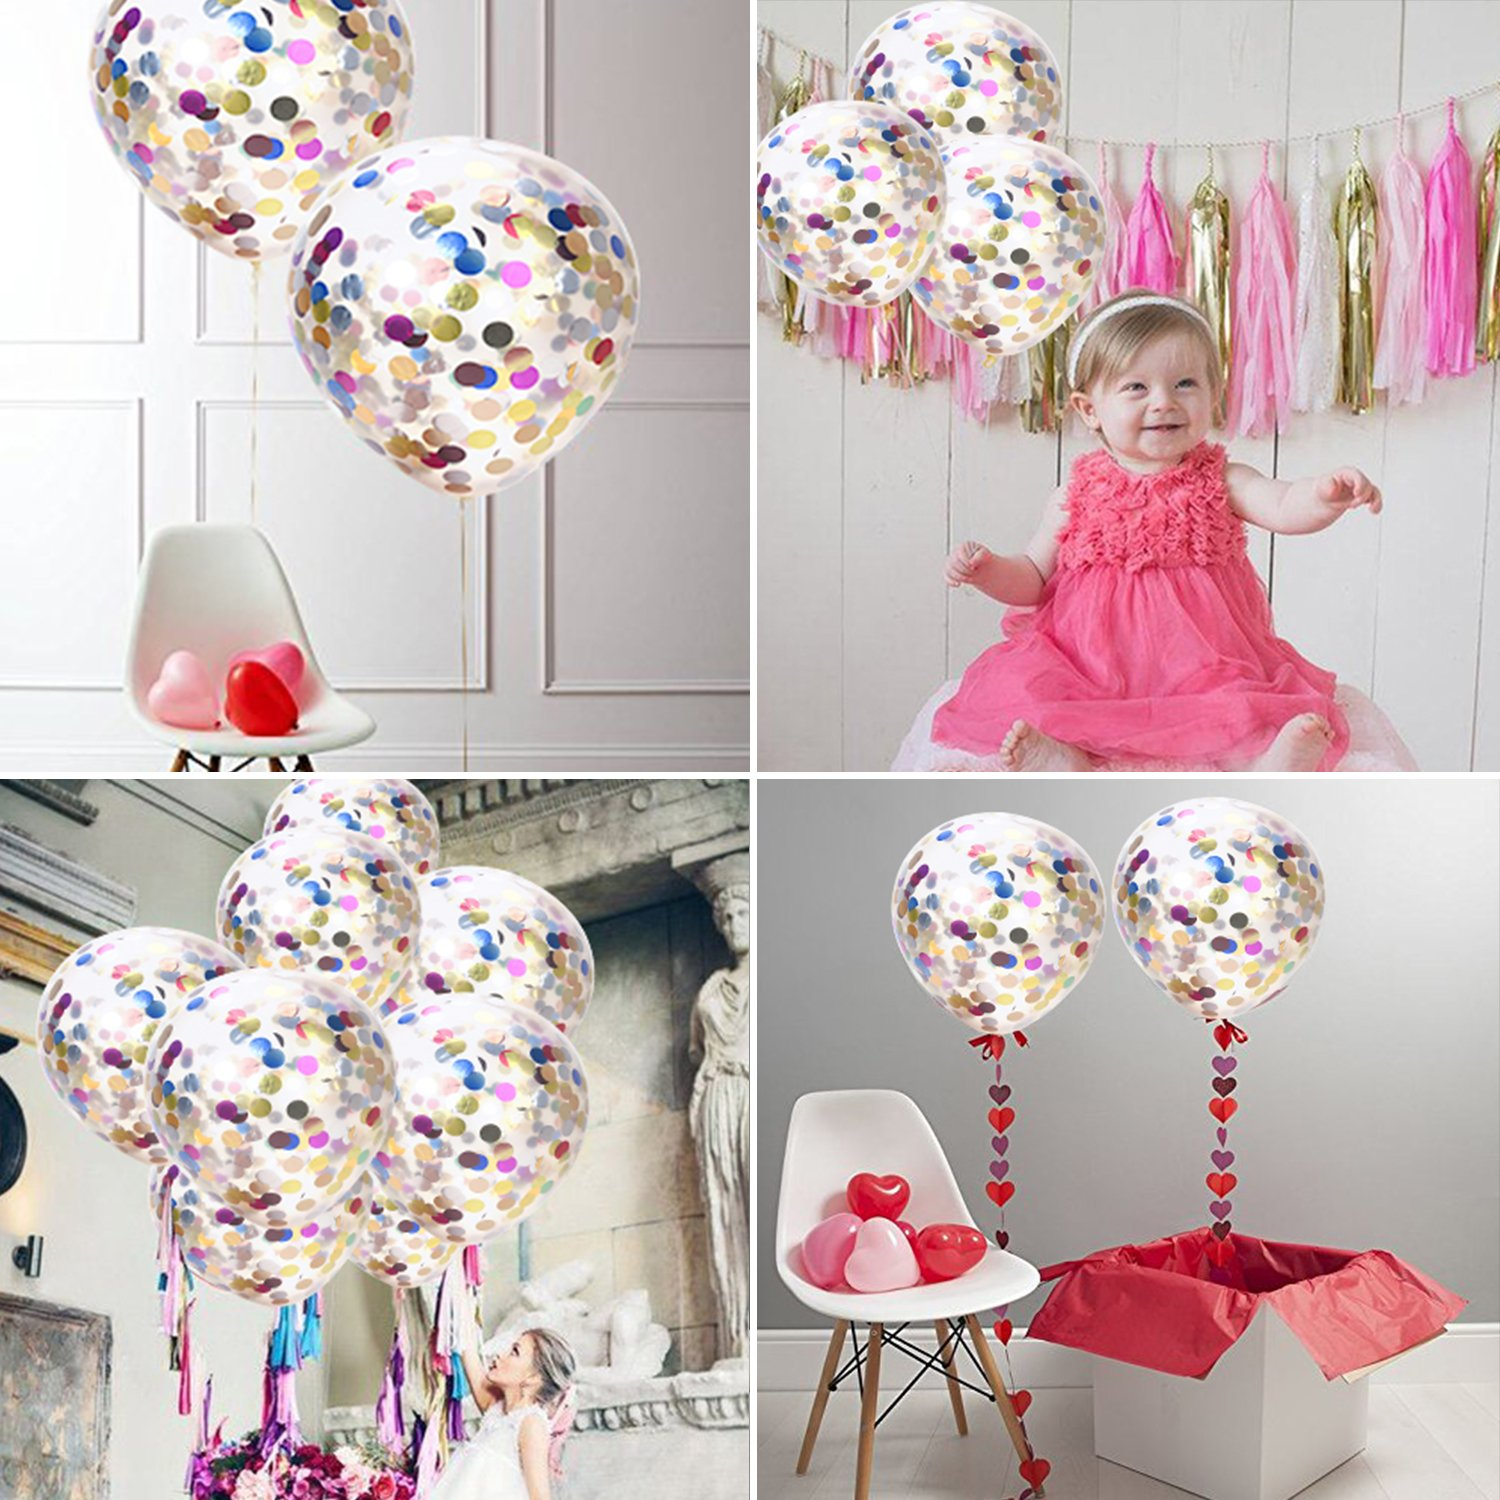 Proposal Birthday Party Decorations 12, Mouth Piece Included WEBSUN Confetti Balloons 15pcs Silver /& Gold glitter balloons for Wedding